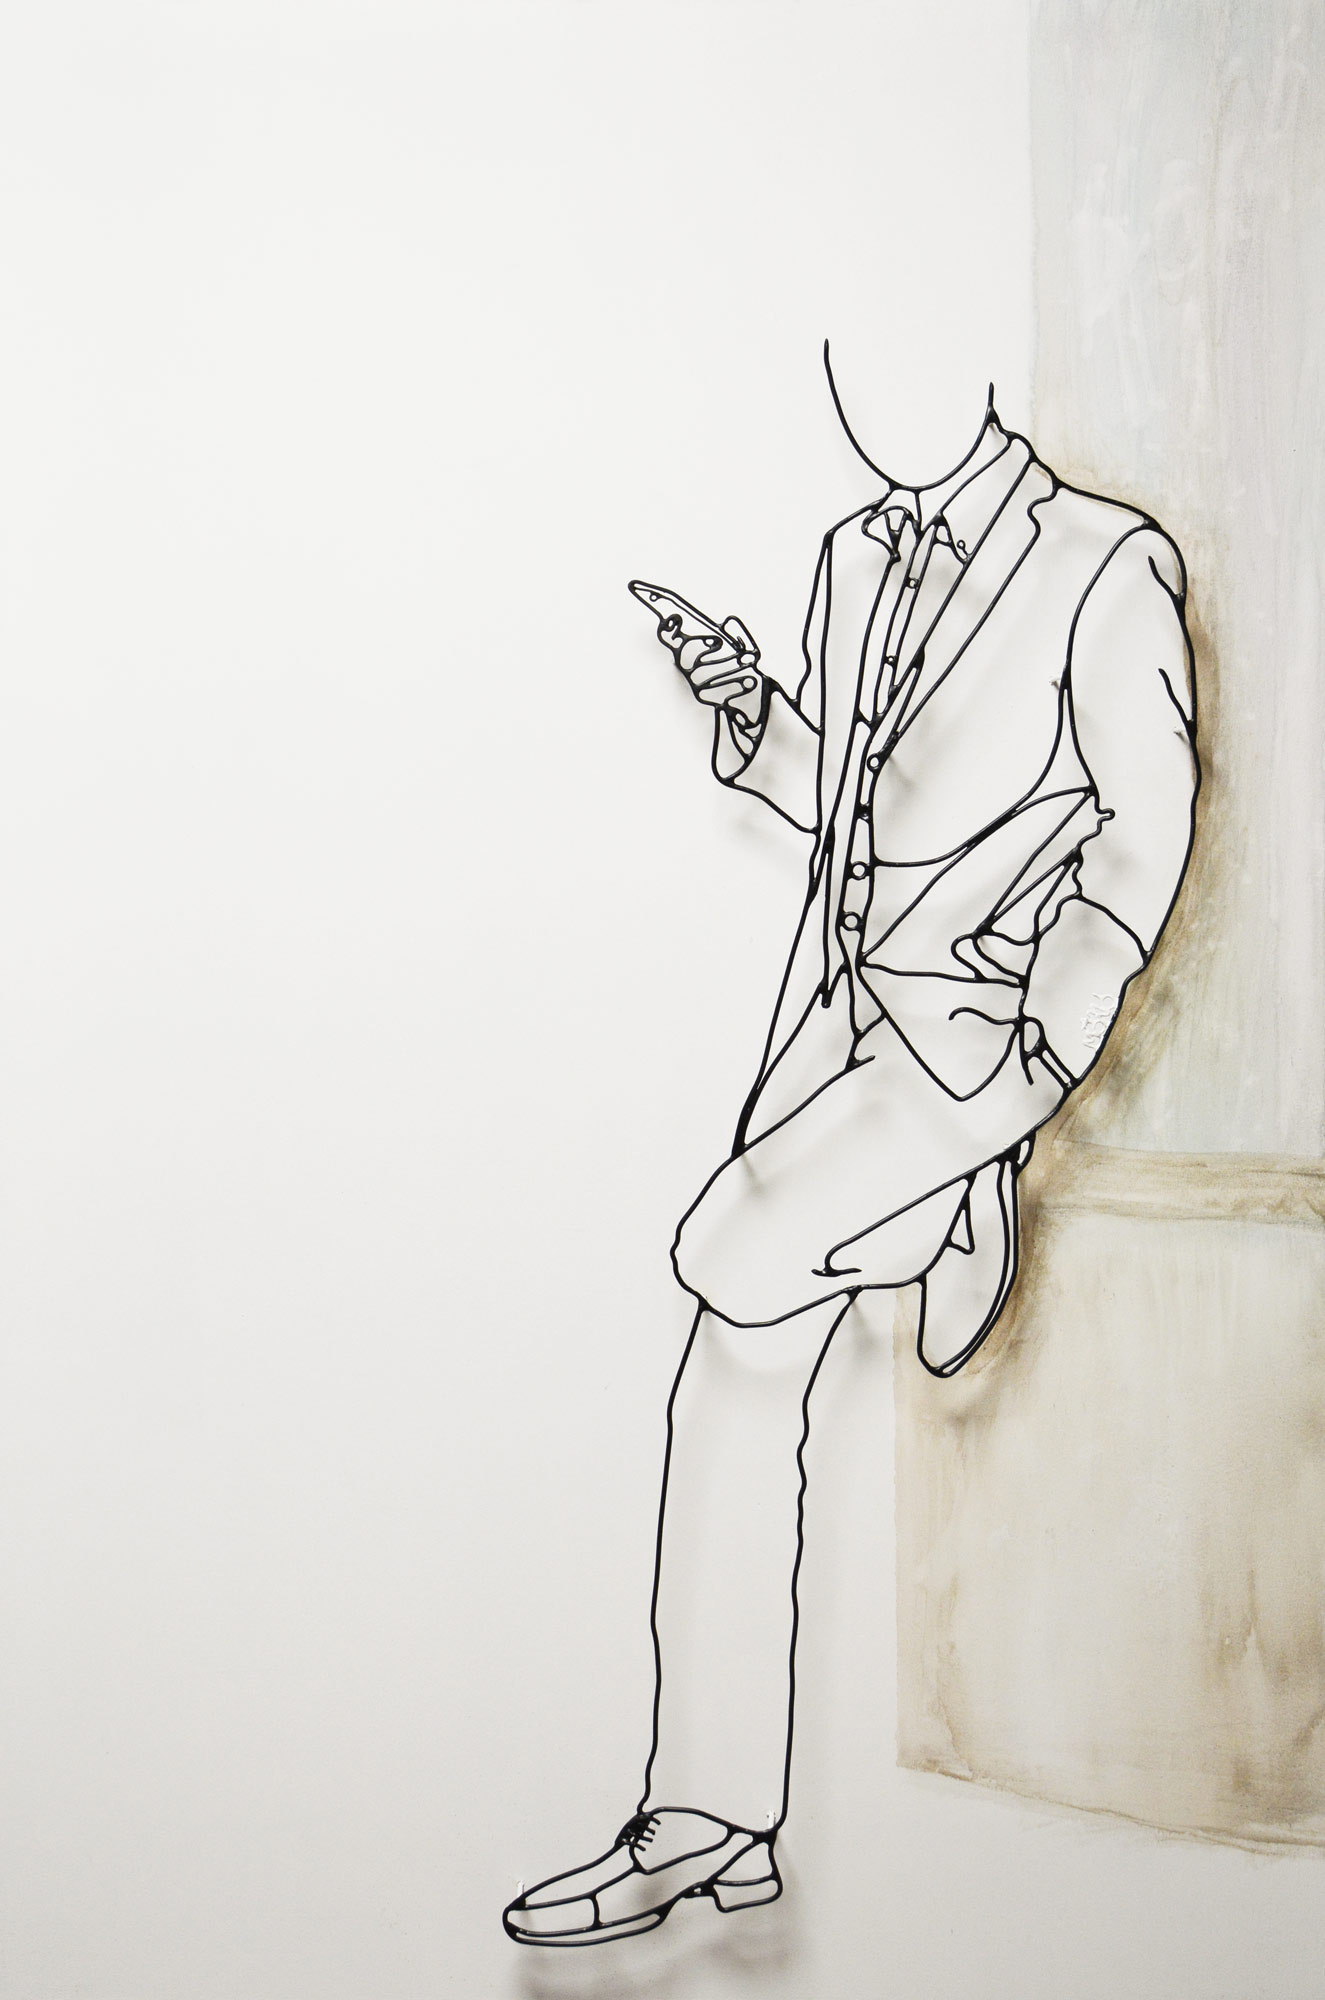 Dandy Osaka wire sculpture by French artist Amimono available at Range of Arts Gallery Honfleur